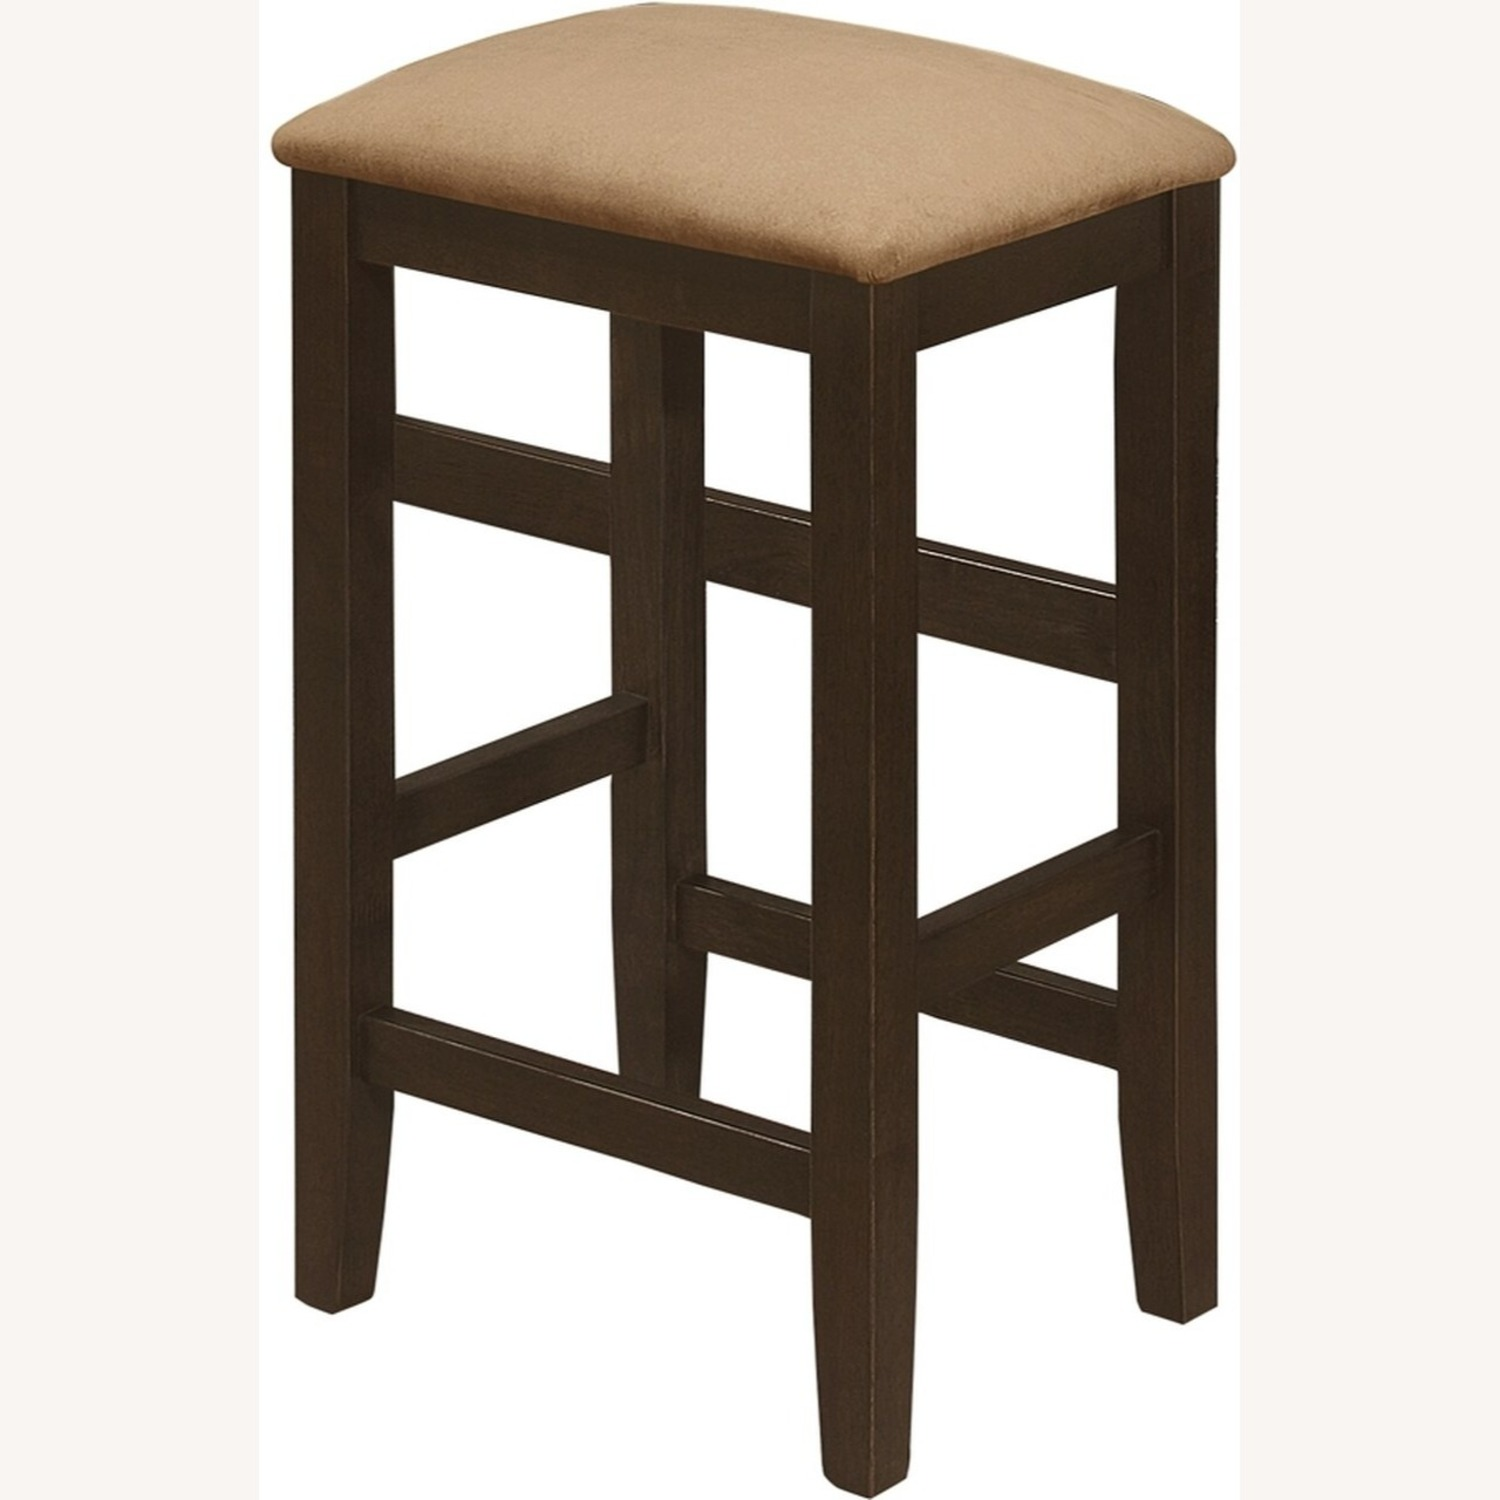 Counter Height Stool In Cappuccino Fiber Peat - image-1